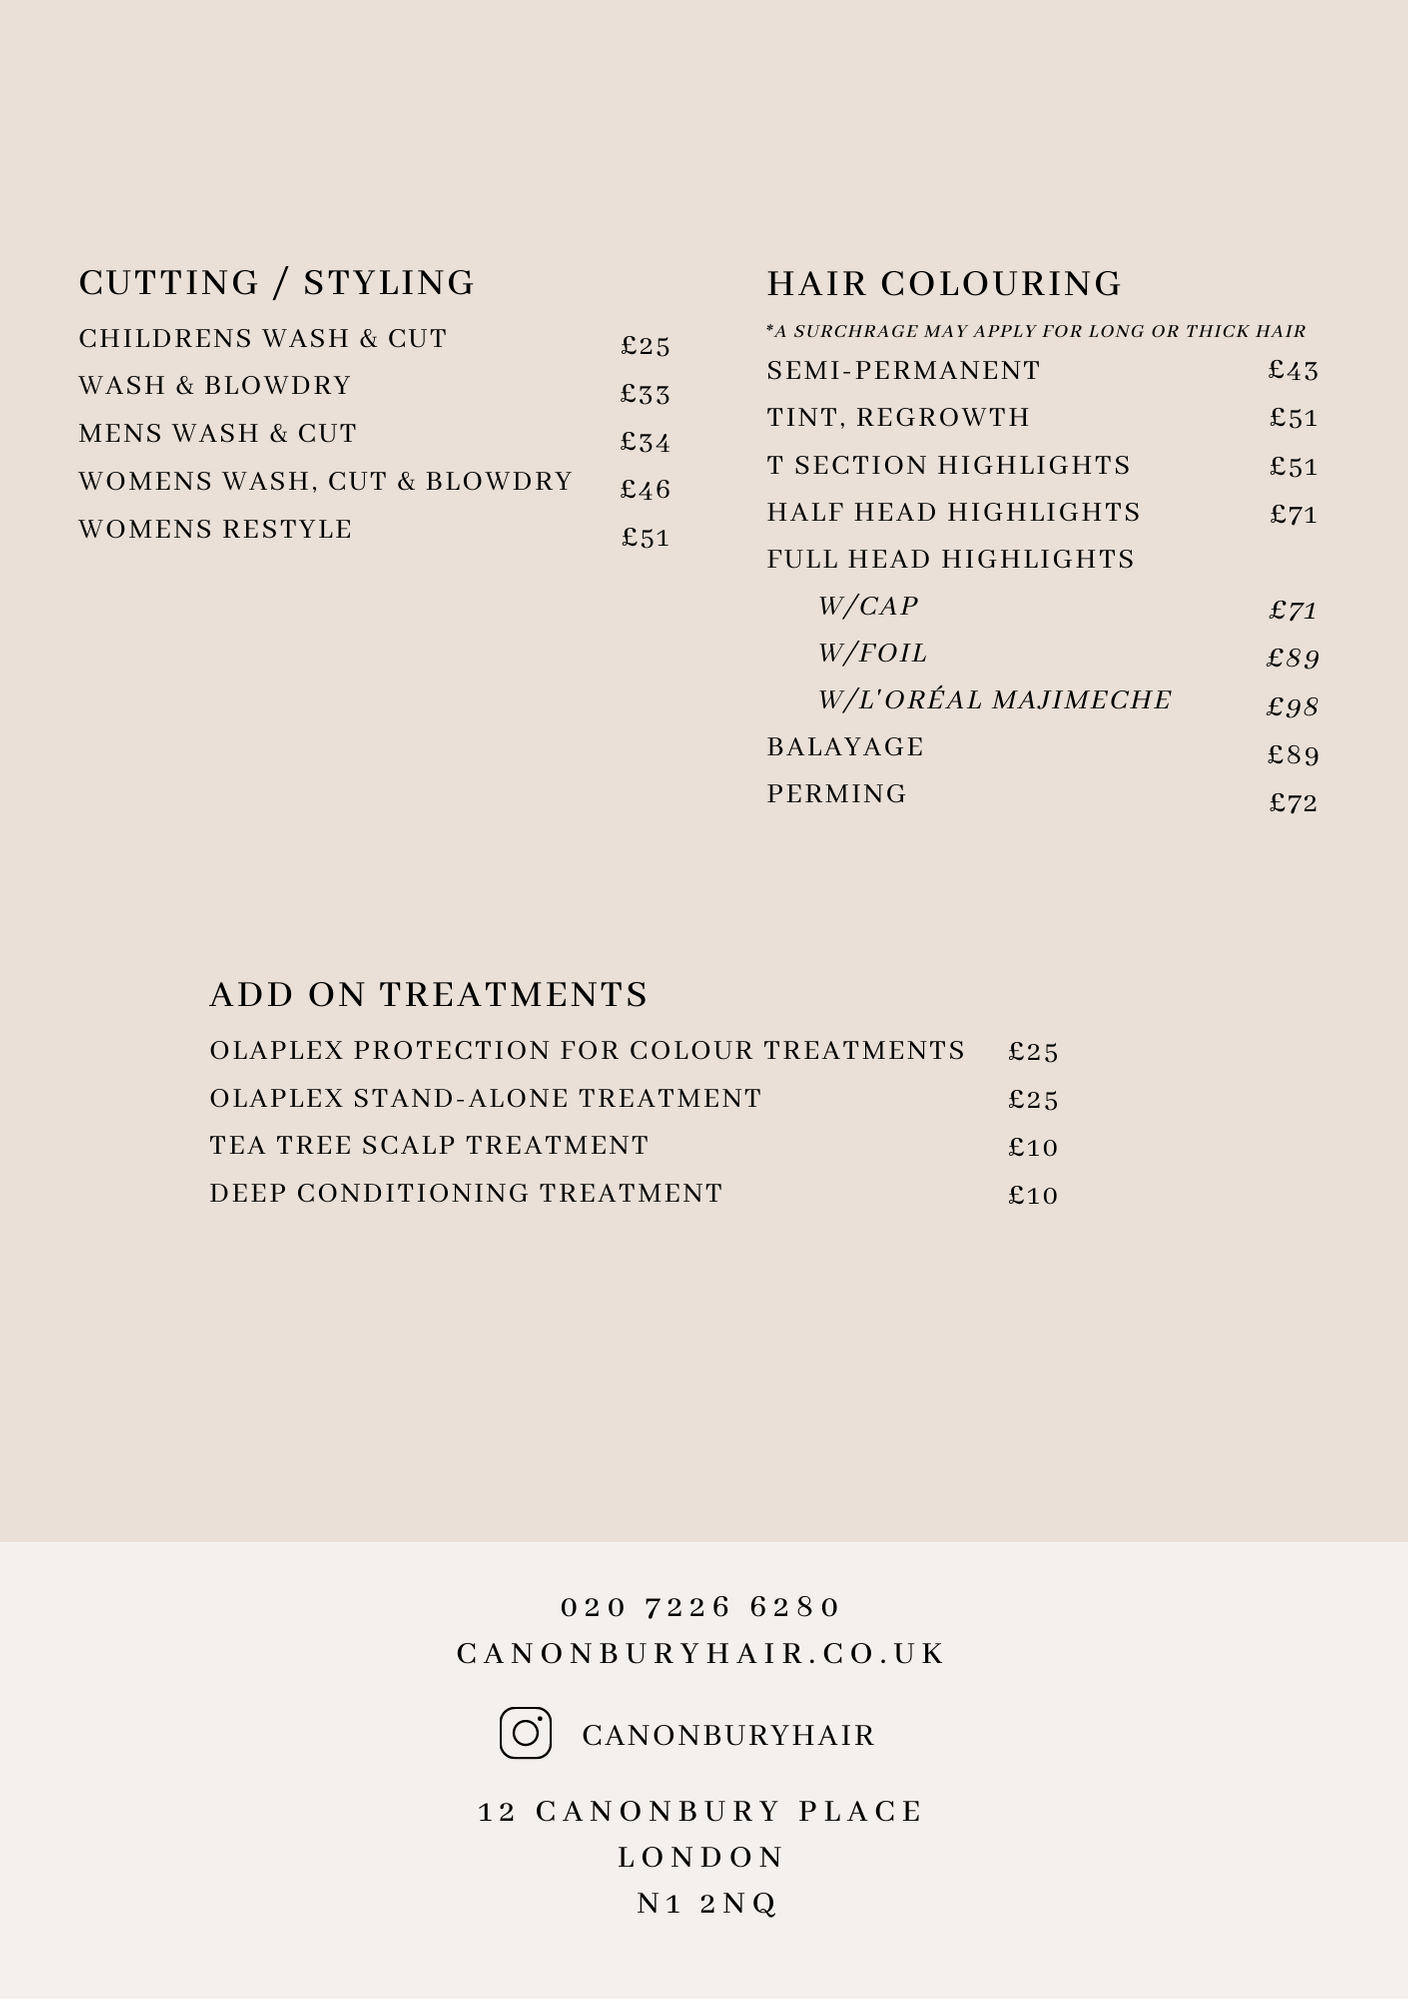 Second page price list